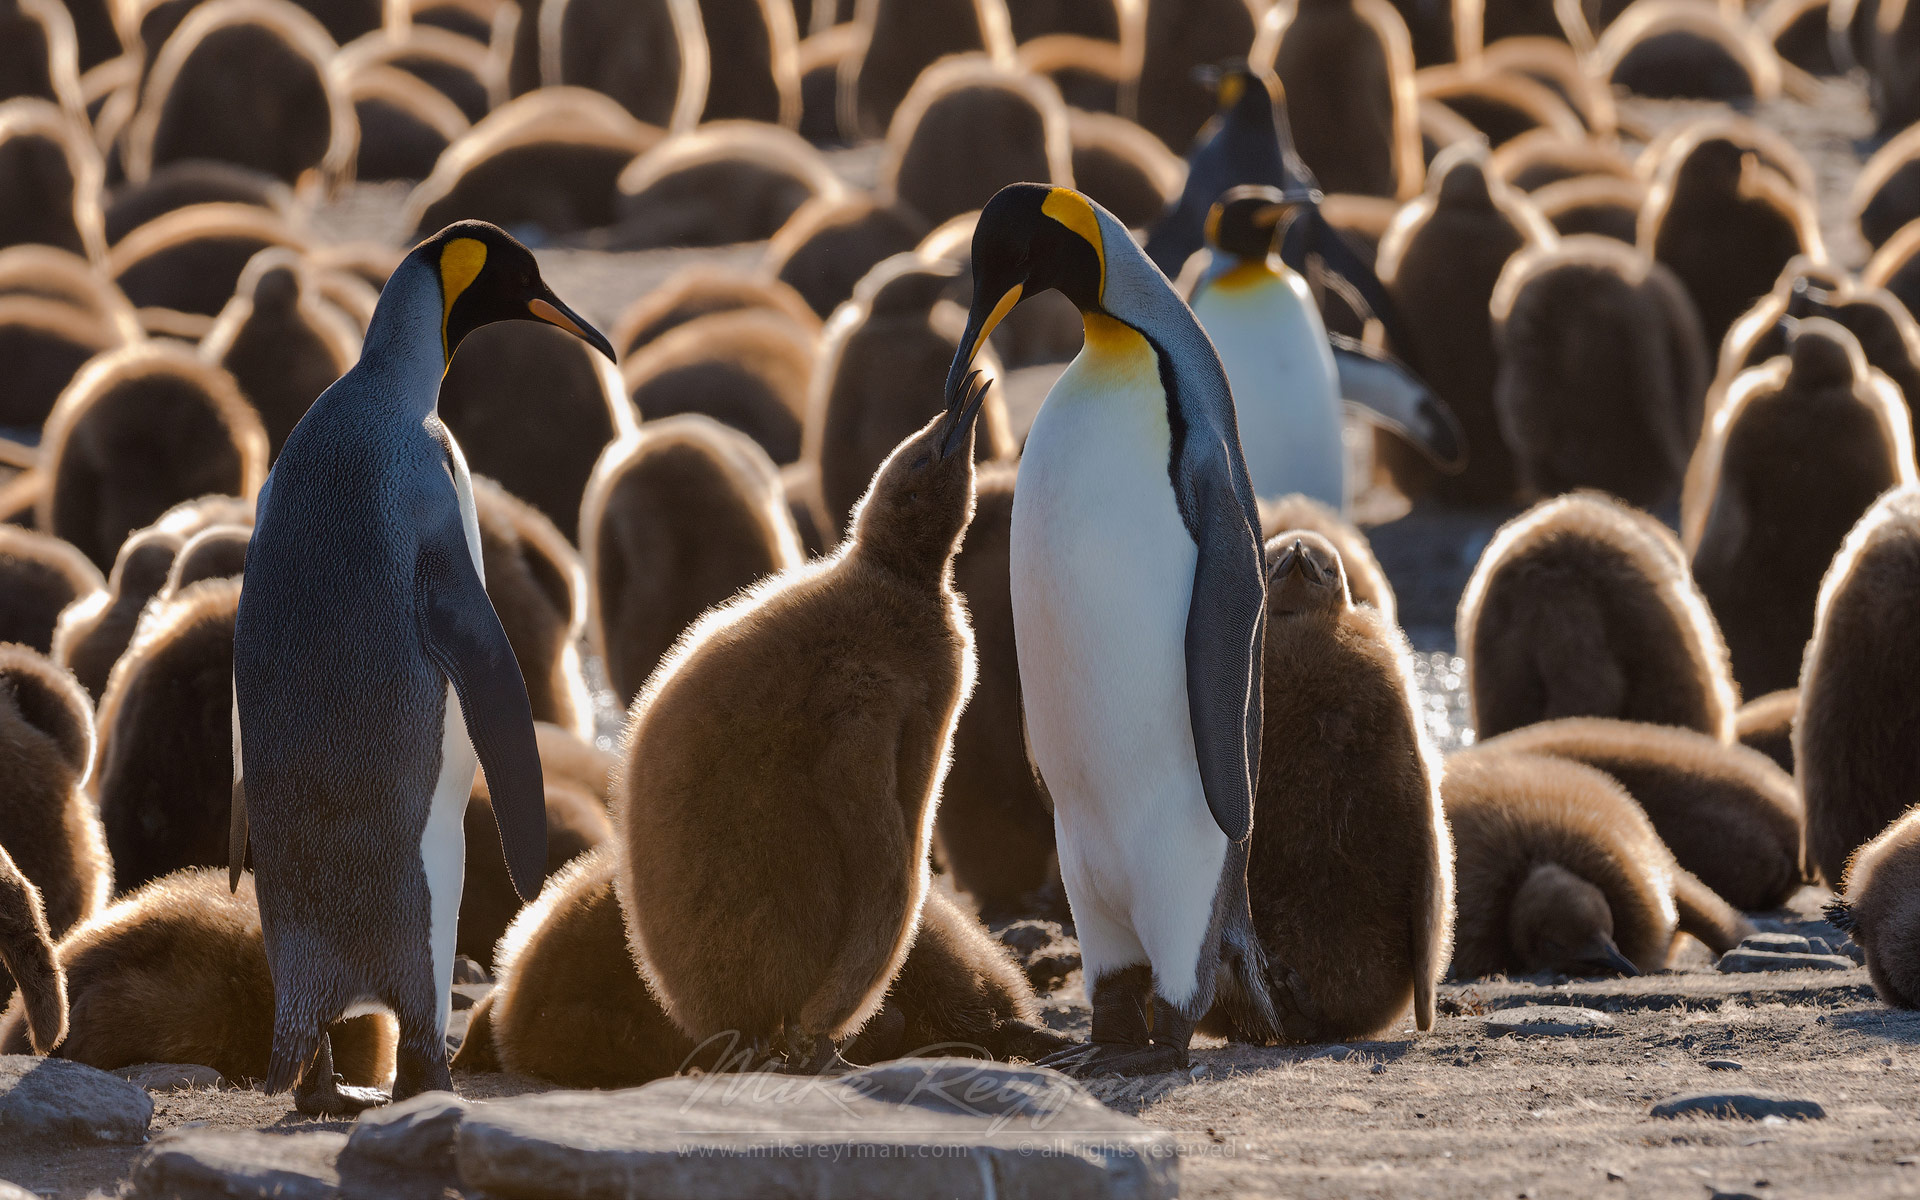 King Penguin (Aptenodytes patagonicus) Creche. Saint Andrews Bay, South Georgia, Sub-Antarctic - King-Penguin-Chicks-In-Creche-South-Georgia-Sub-Antarctic - Mike Reyfman Photography